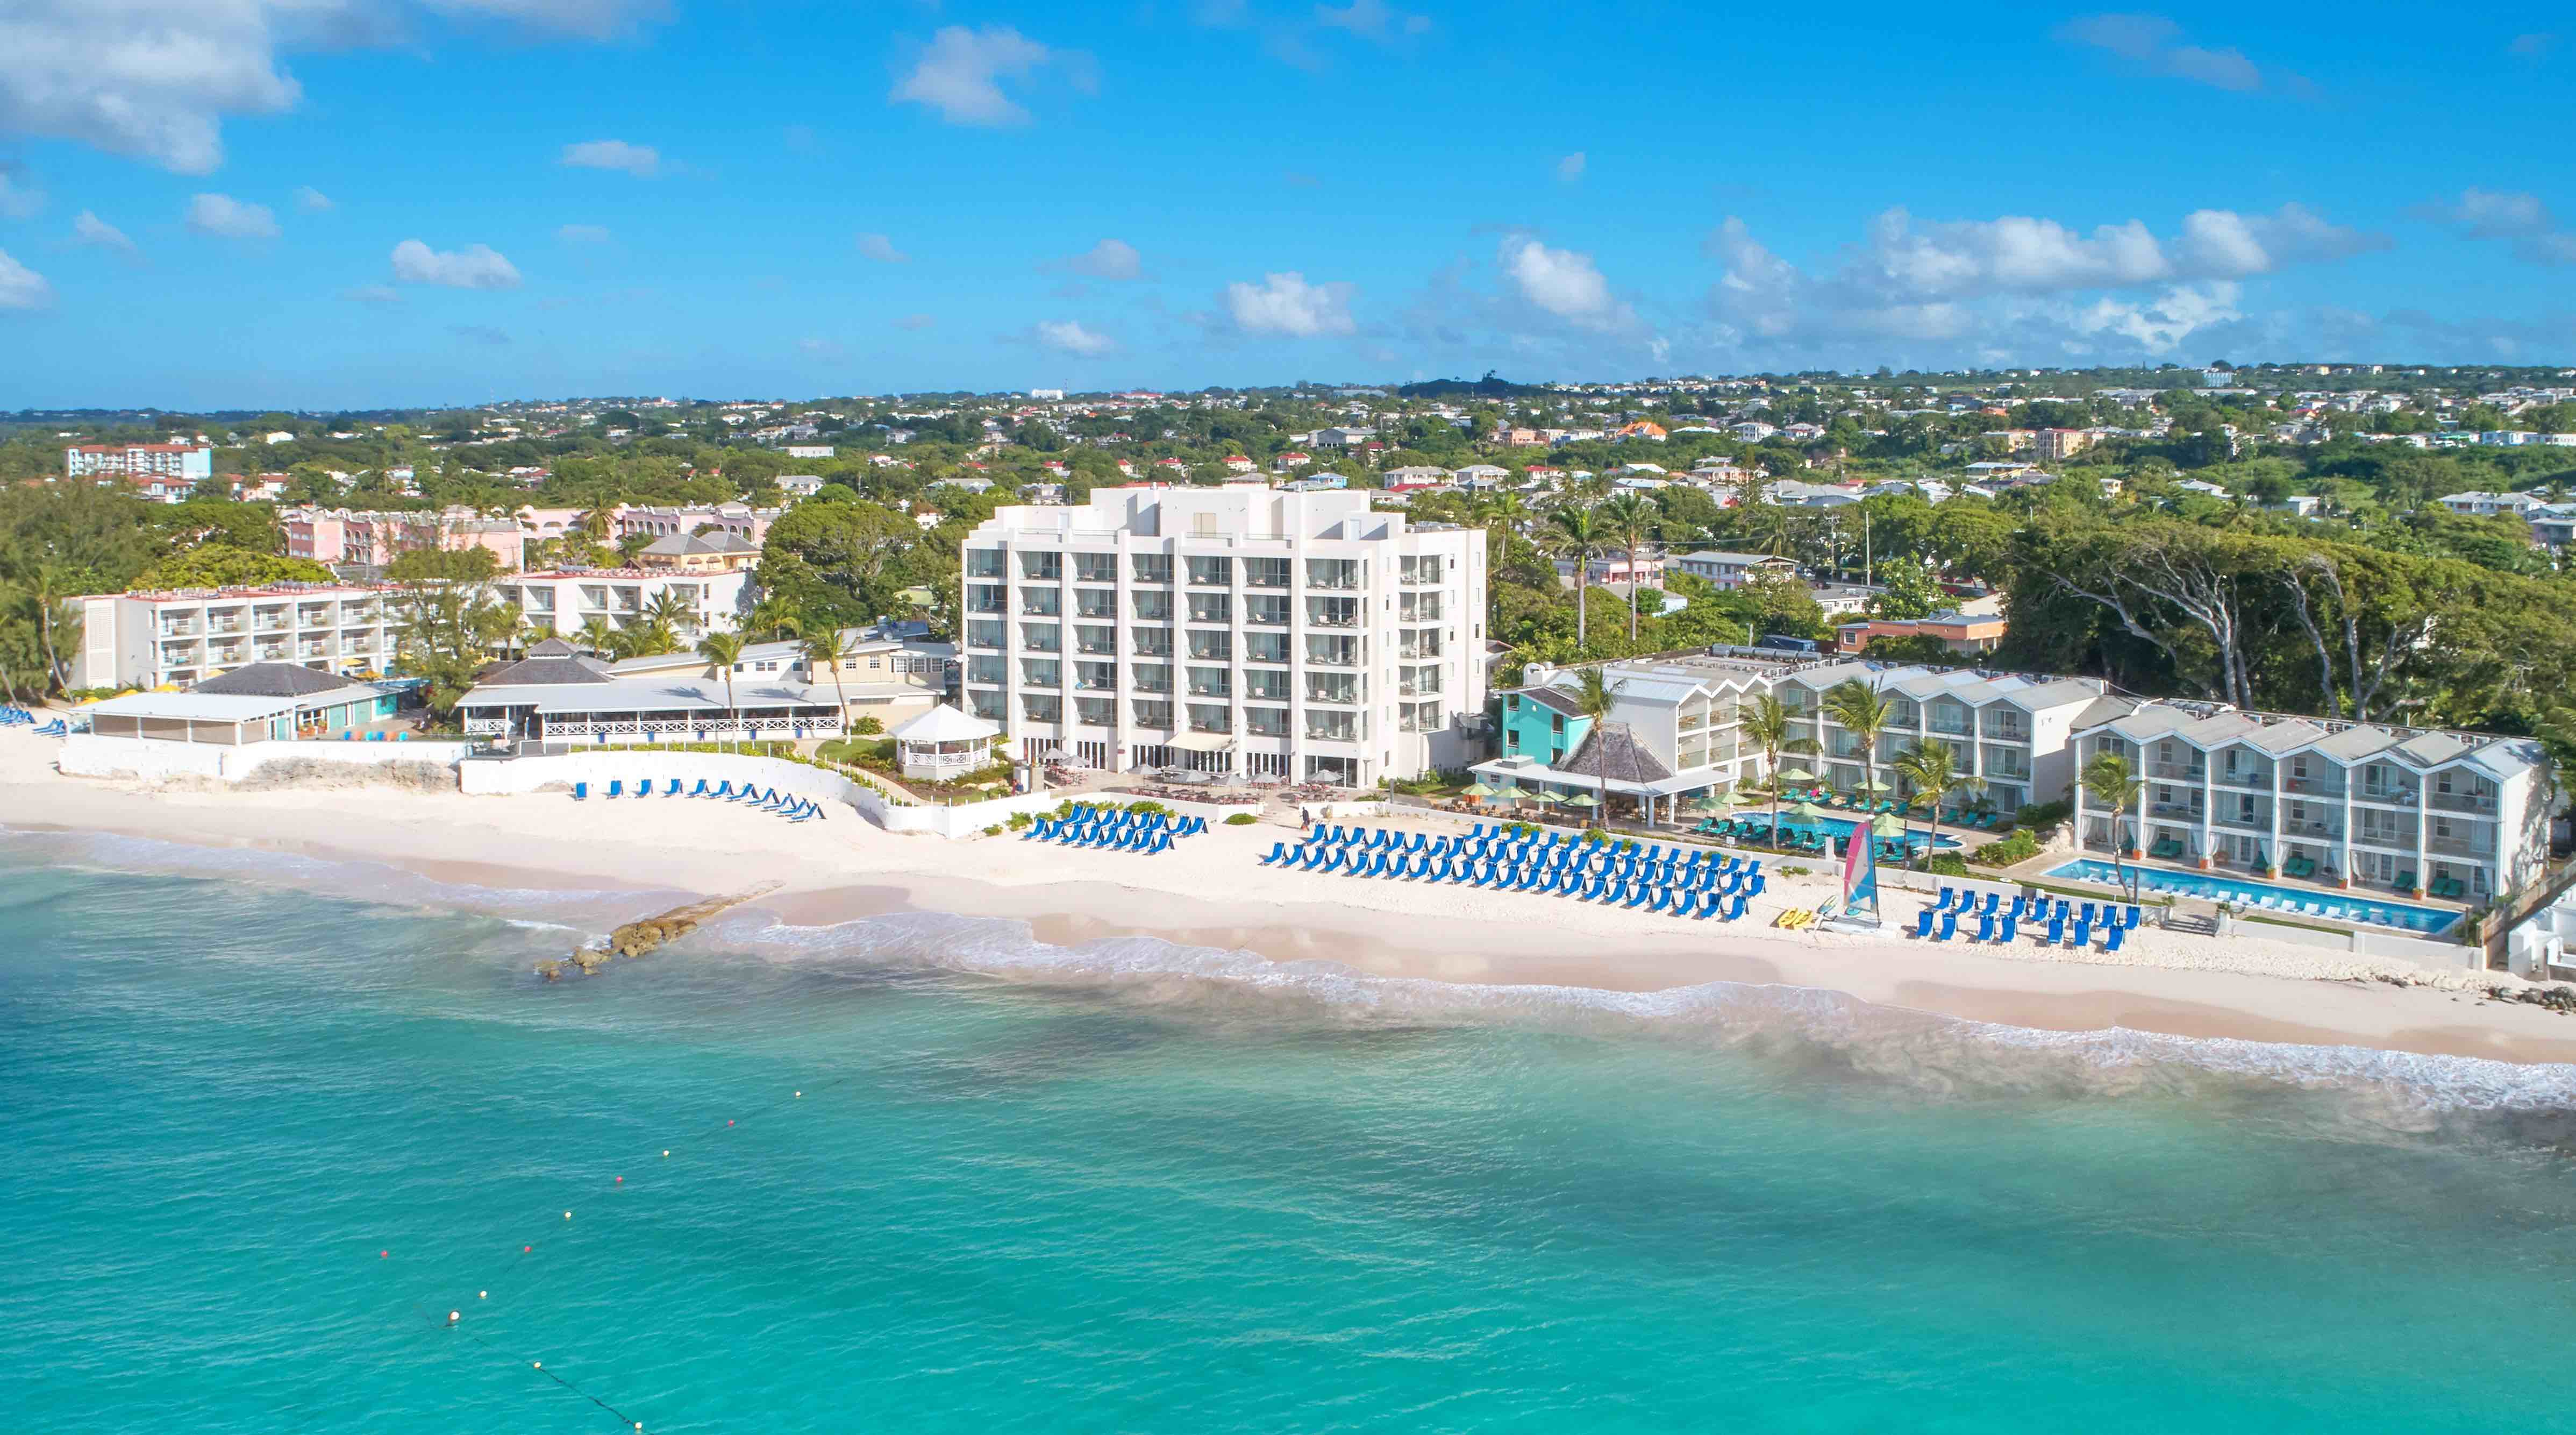 Sea Breeze Beach Original - Luxury Resort Operator Ocean Hotels Group in Barbados Switches to Cloud-Based Maestro PMS Mid Pandemic - Innovative Property Management Software Solutions Powering Hotels, Resorts & Multi‑Property Groups.